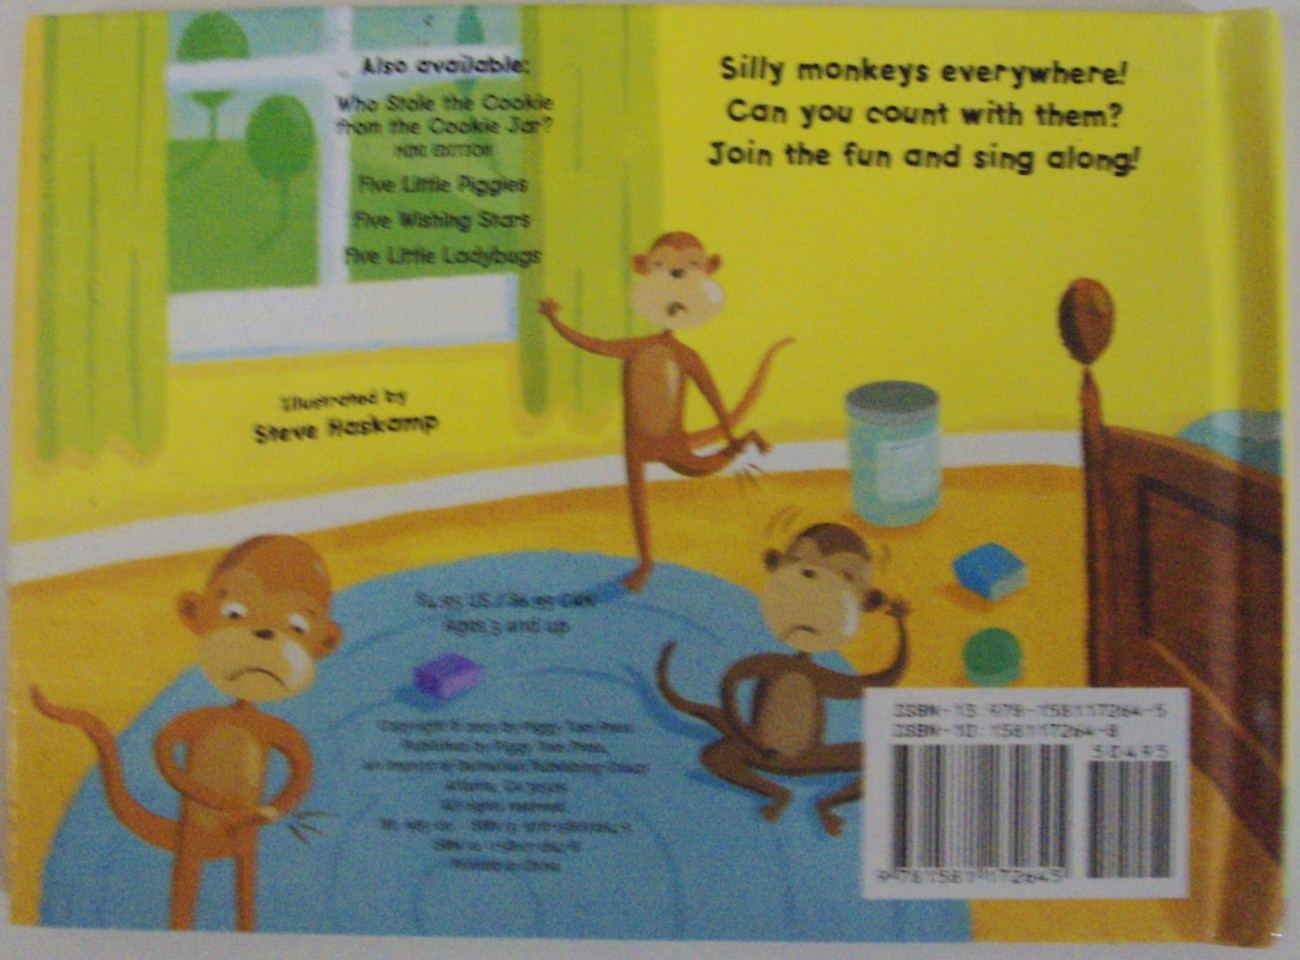 Five Silly Monkeys book illustrated Steve Haskamp published by Piggy Toes Press